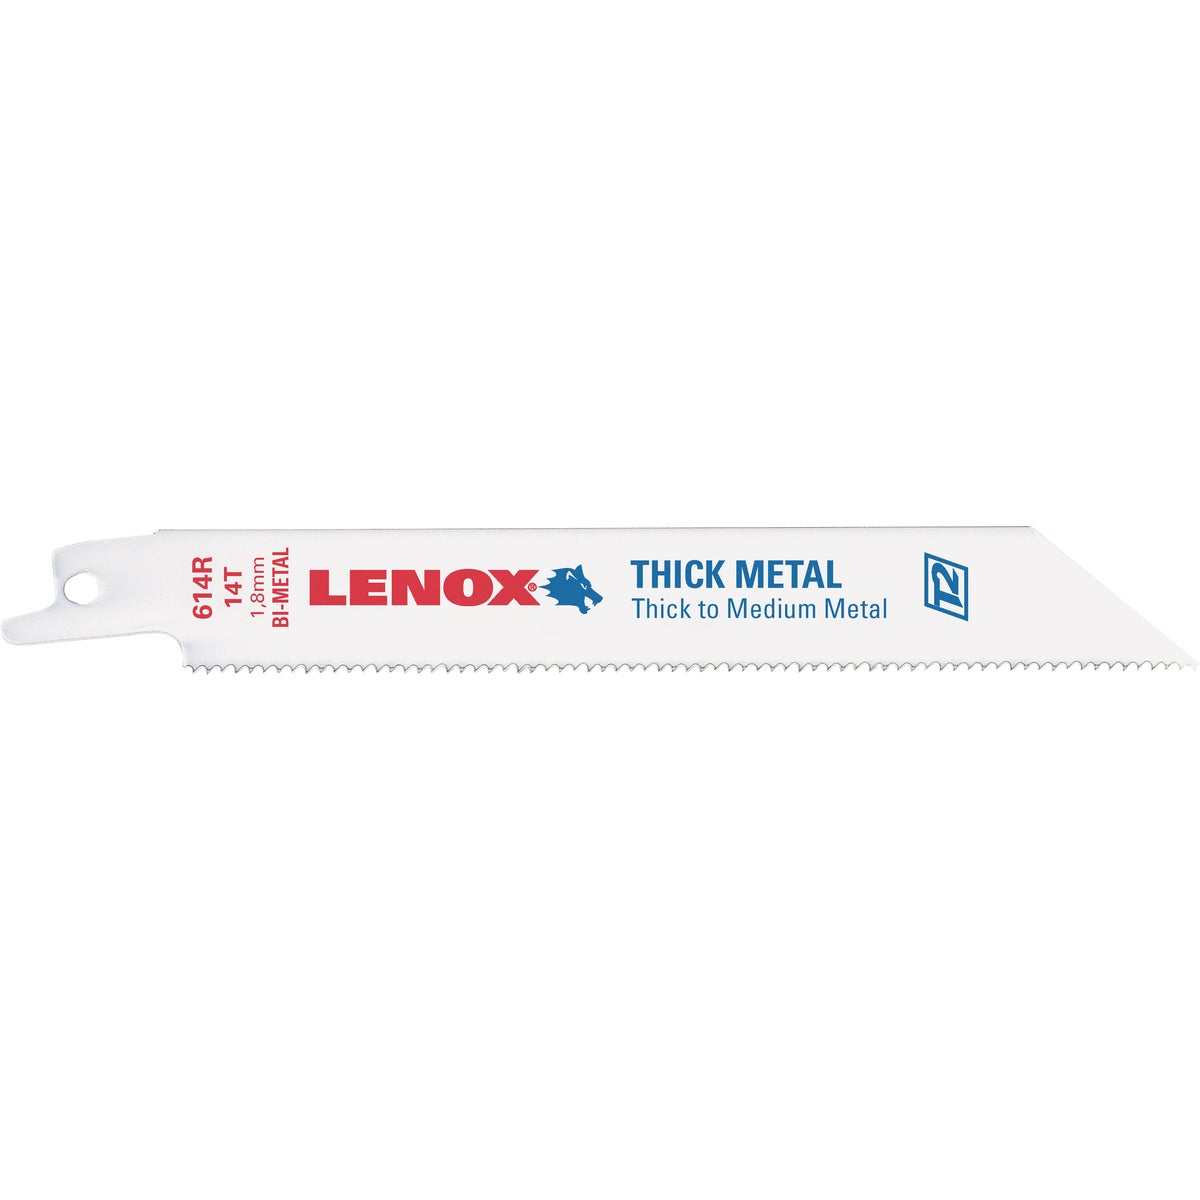 "6"" 14T RECIP SAW BLADE - S614R by Lenox"